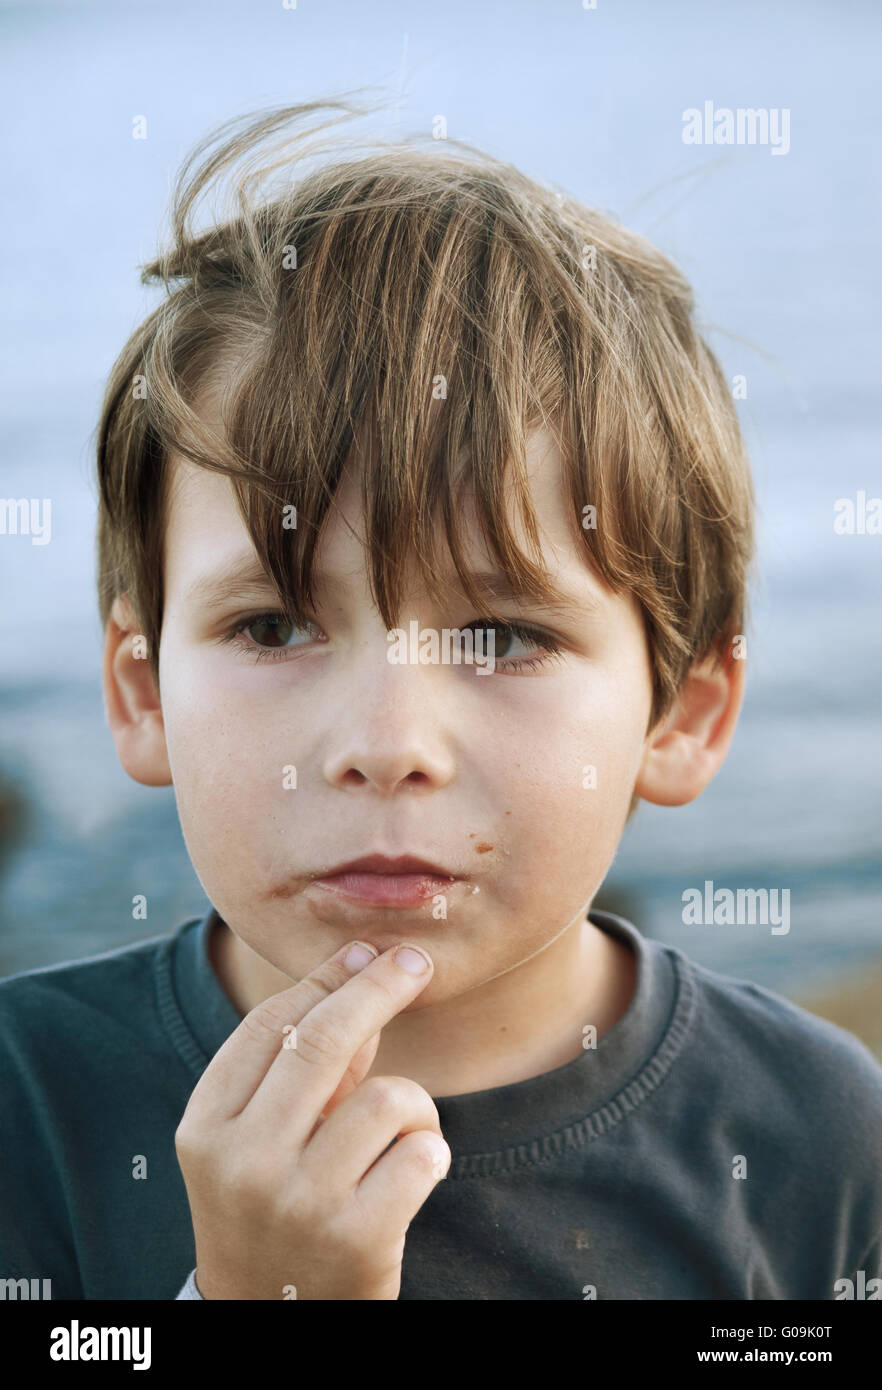 Child outdoor - Stock Image